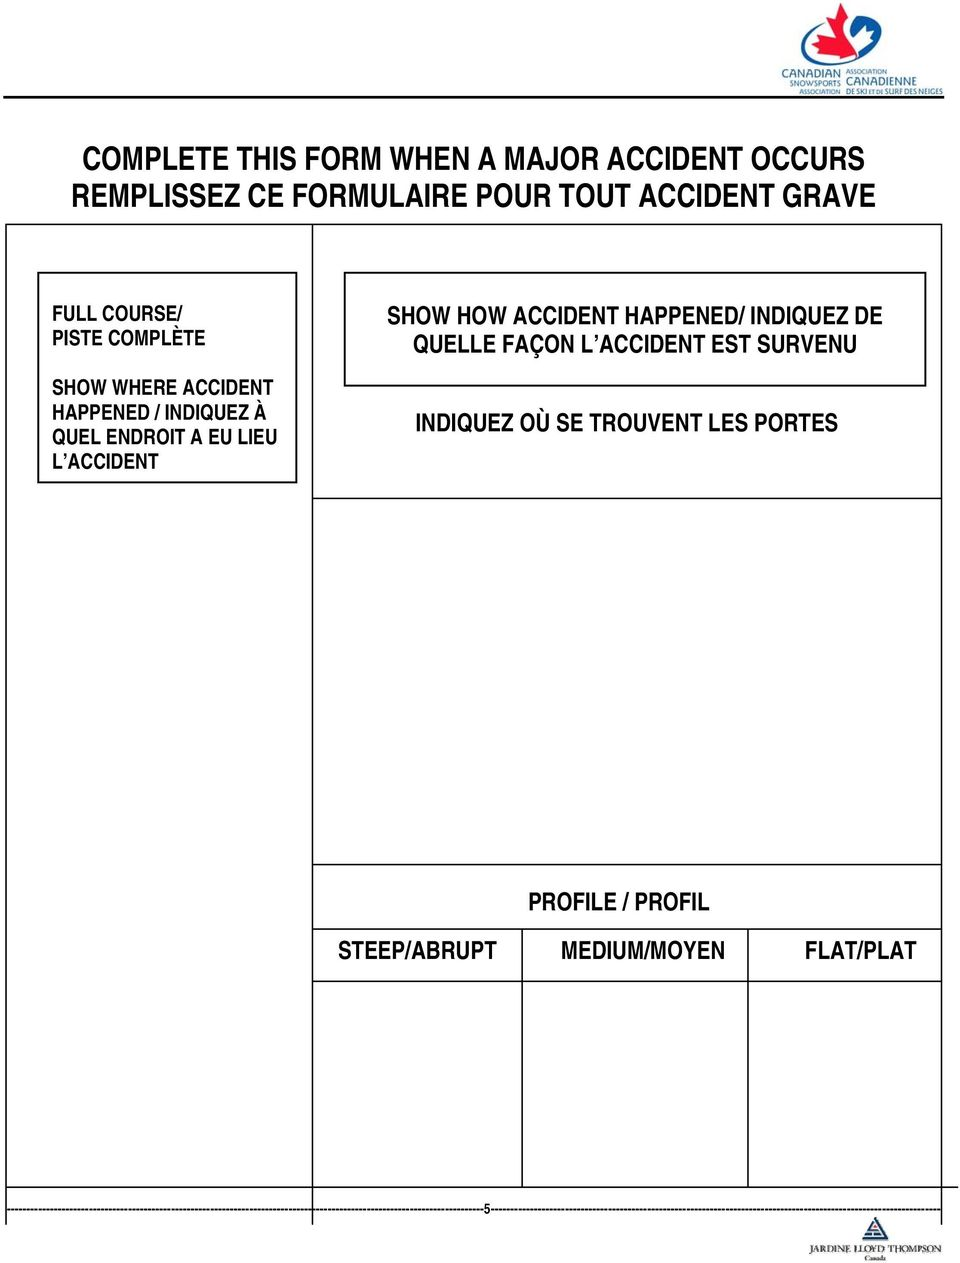 TROUVENT LES PORTES PROFILE / PROFIL STEEP/ABRUPT MEDIUM/MOYEN FLAT/PLAT